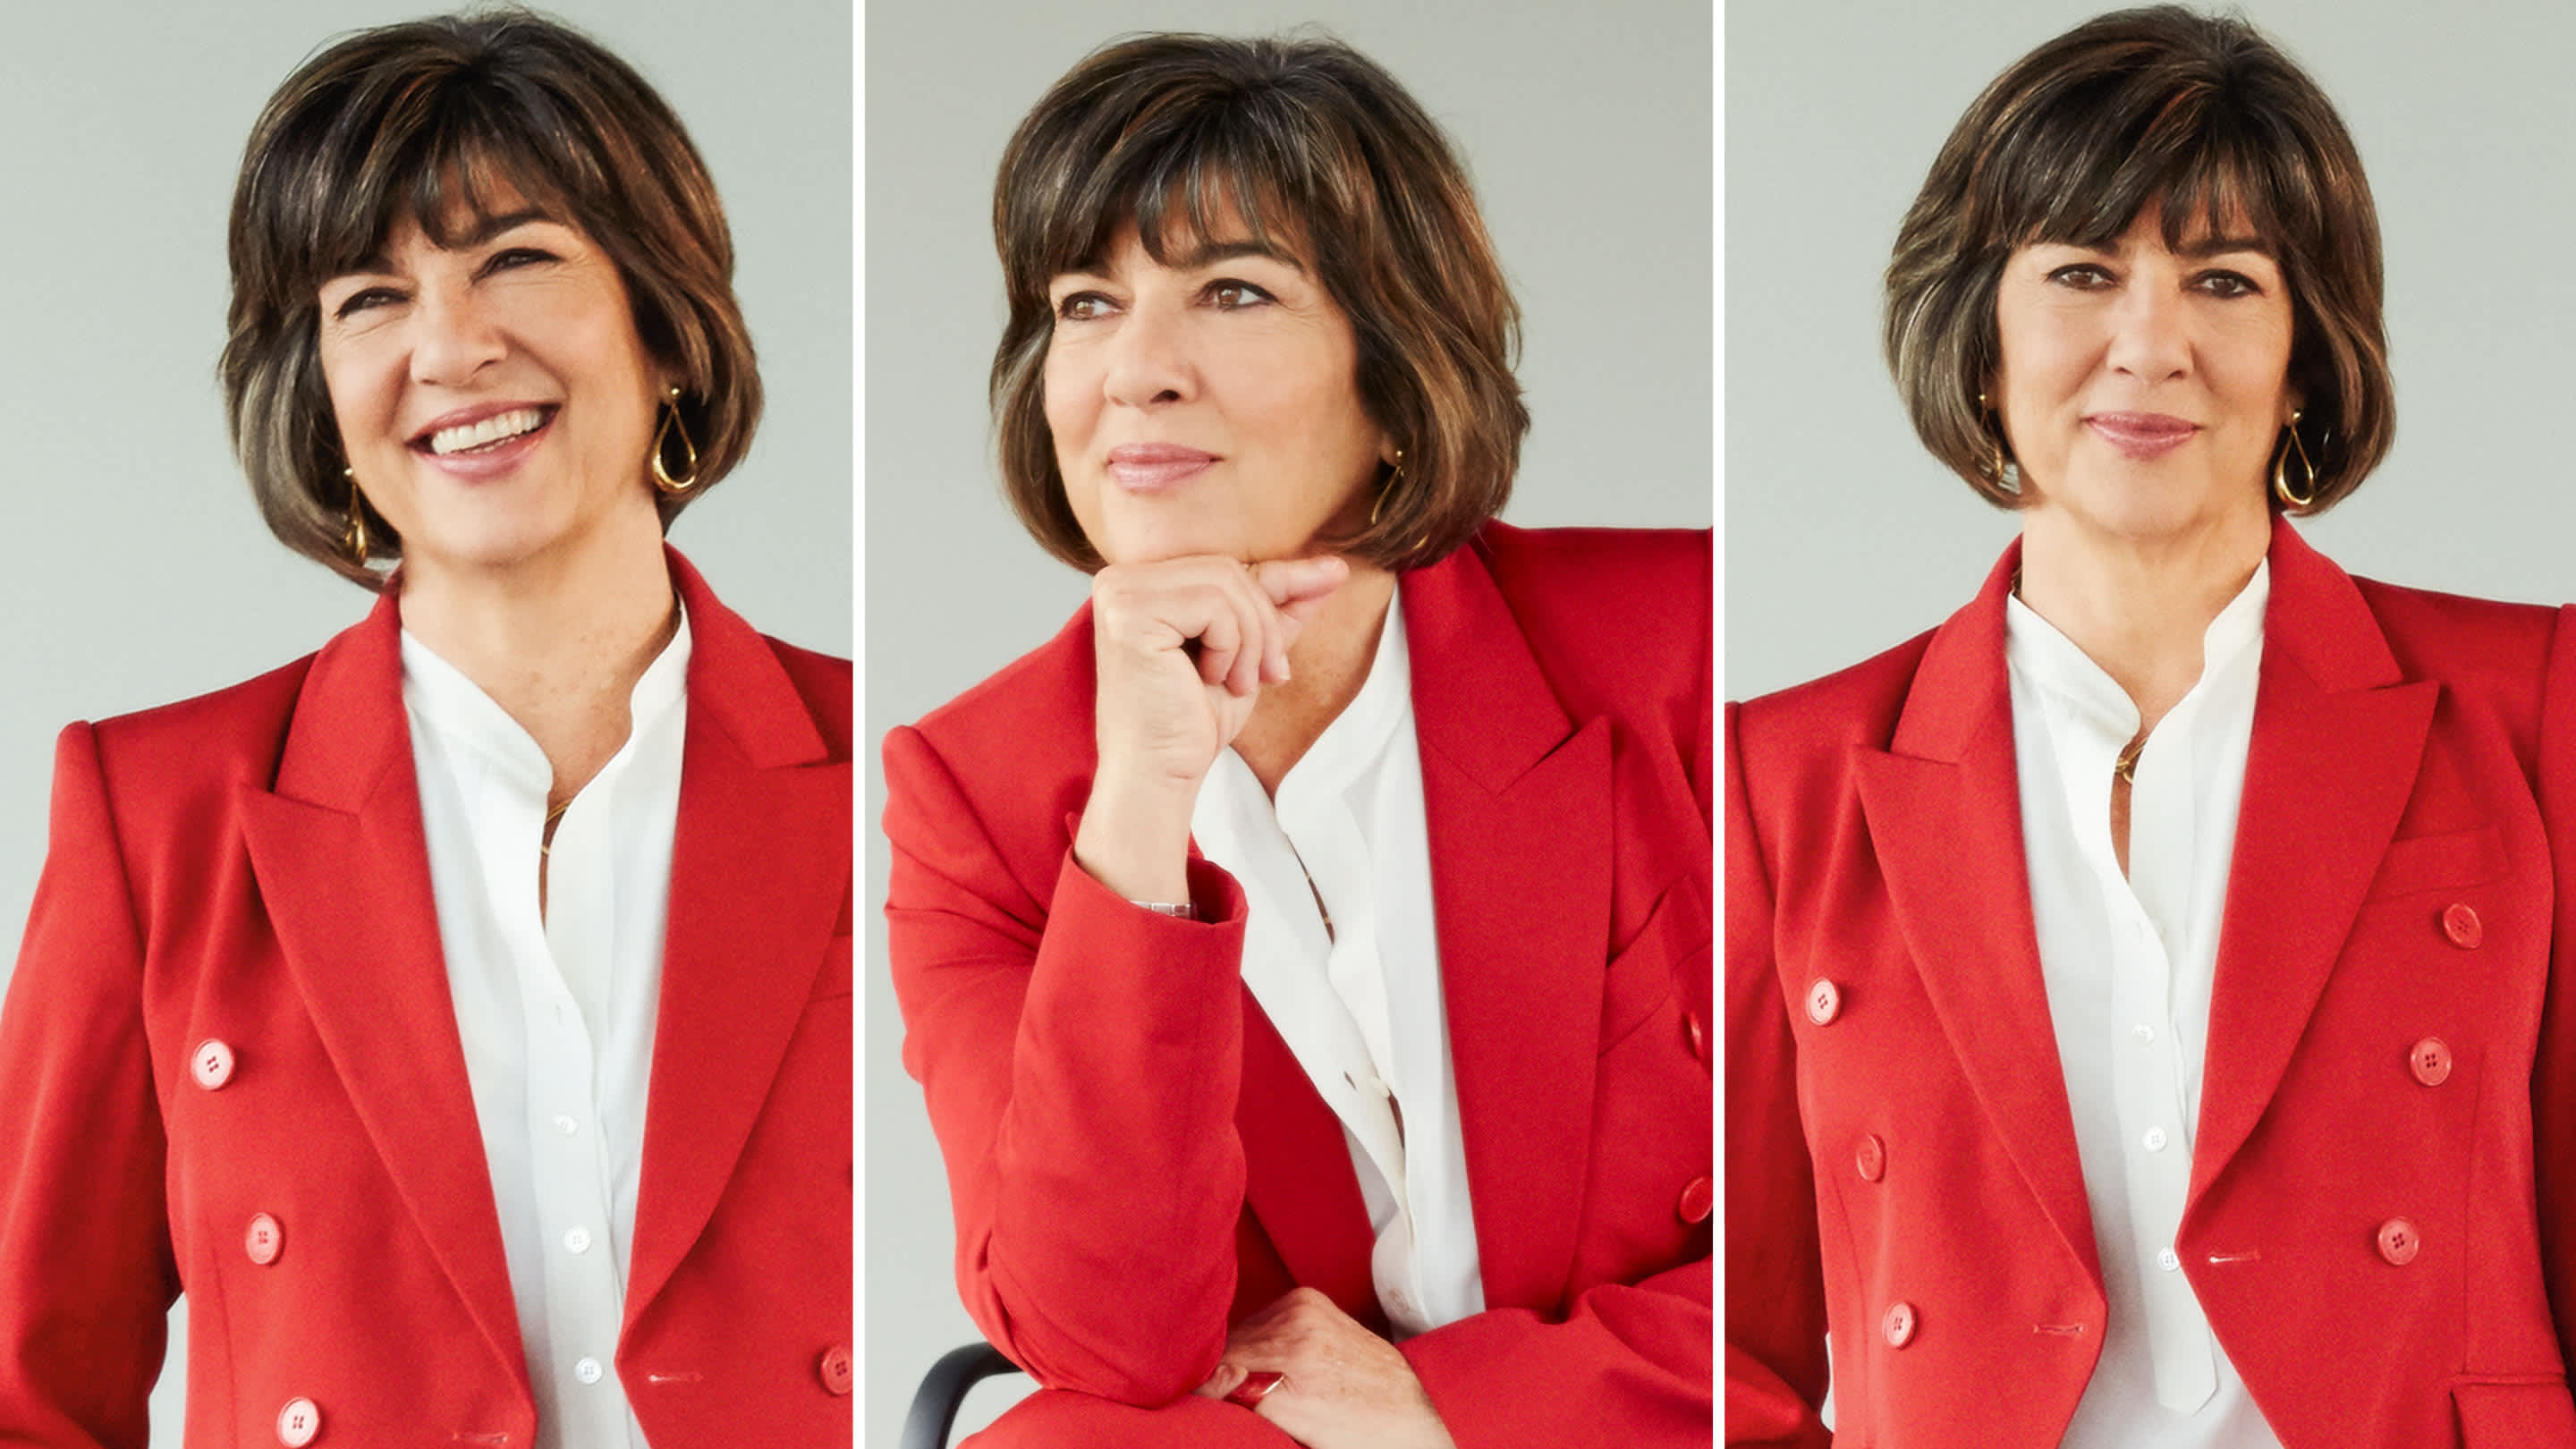 The Playboy Interview with CNN and PBS news host Christiane Amanpour